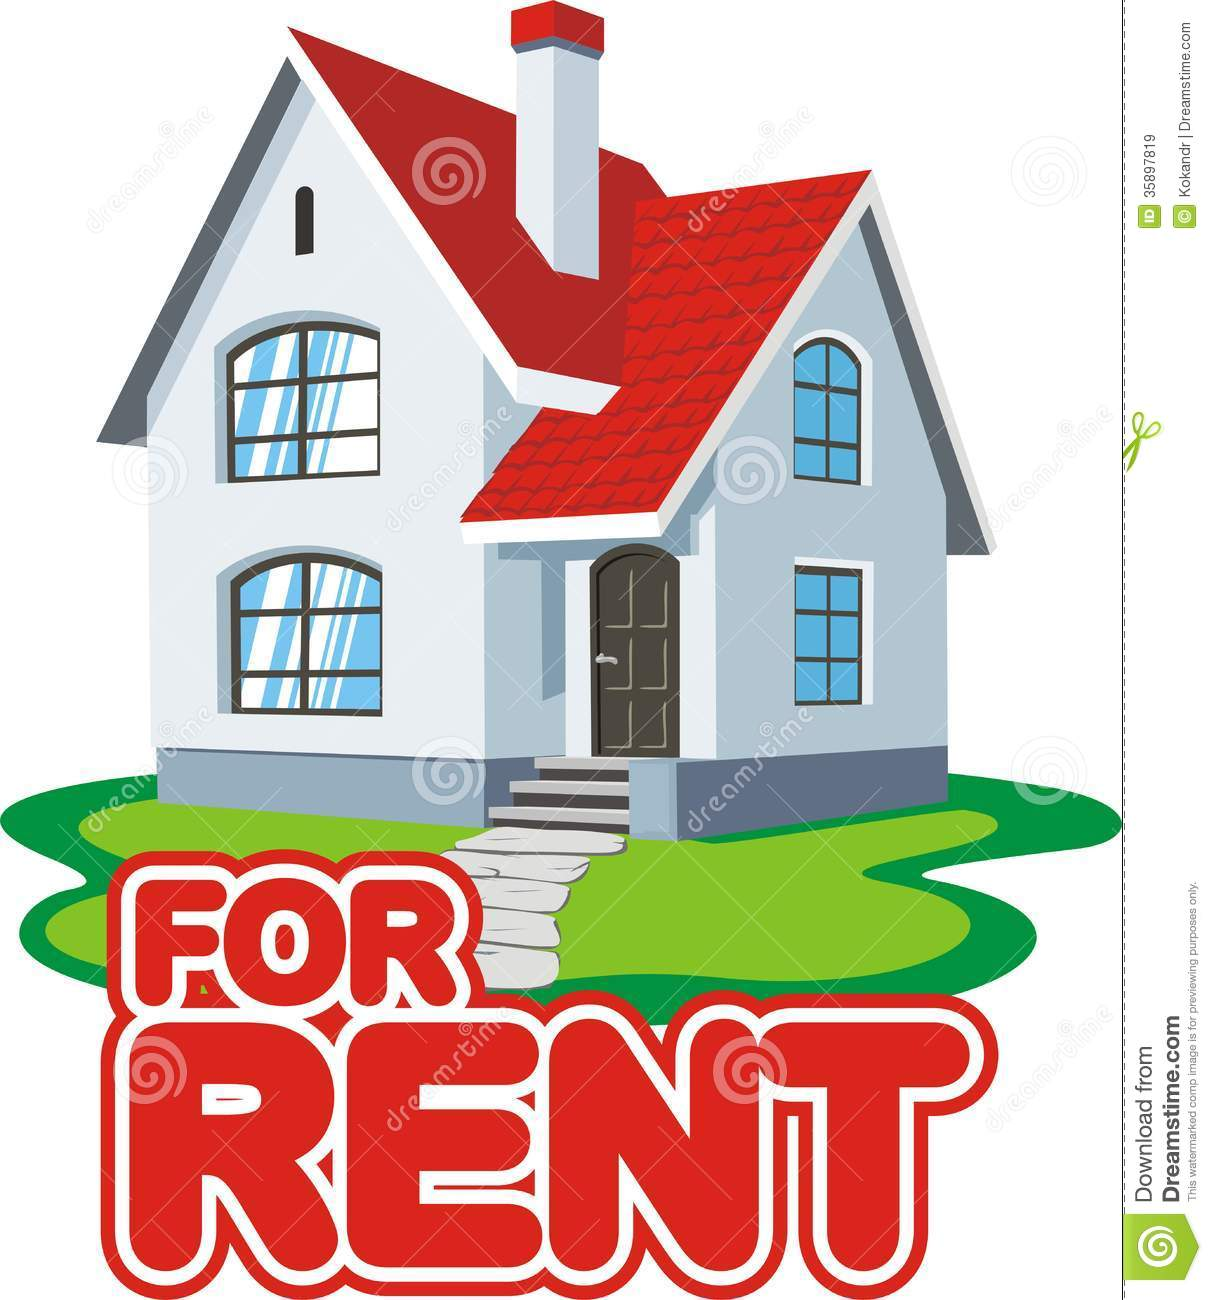 Www Homes For Rent Com: House For Rent Royalty Free Stock Images